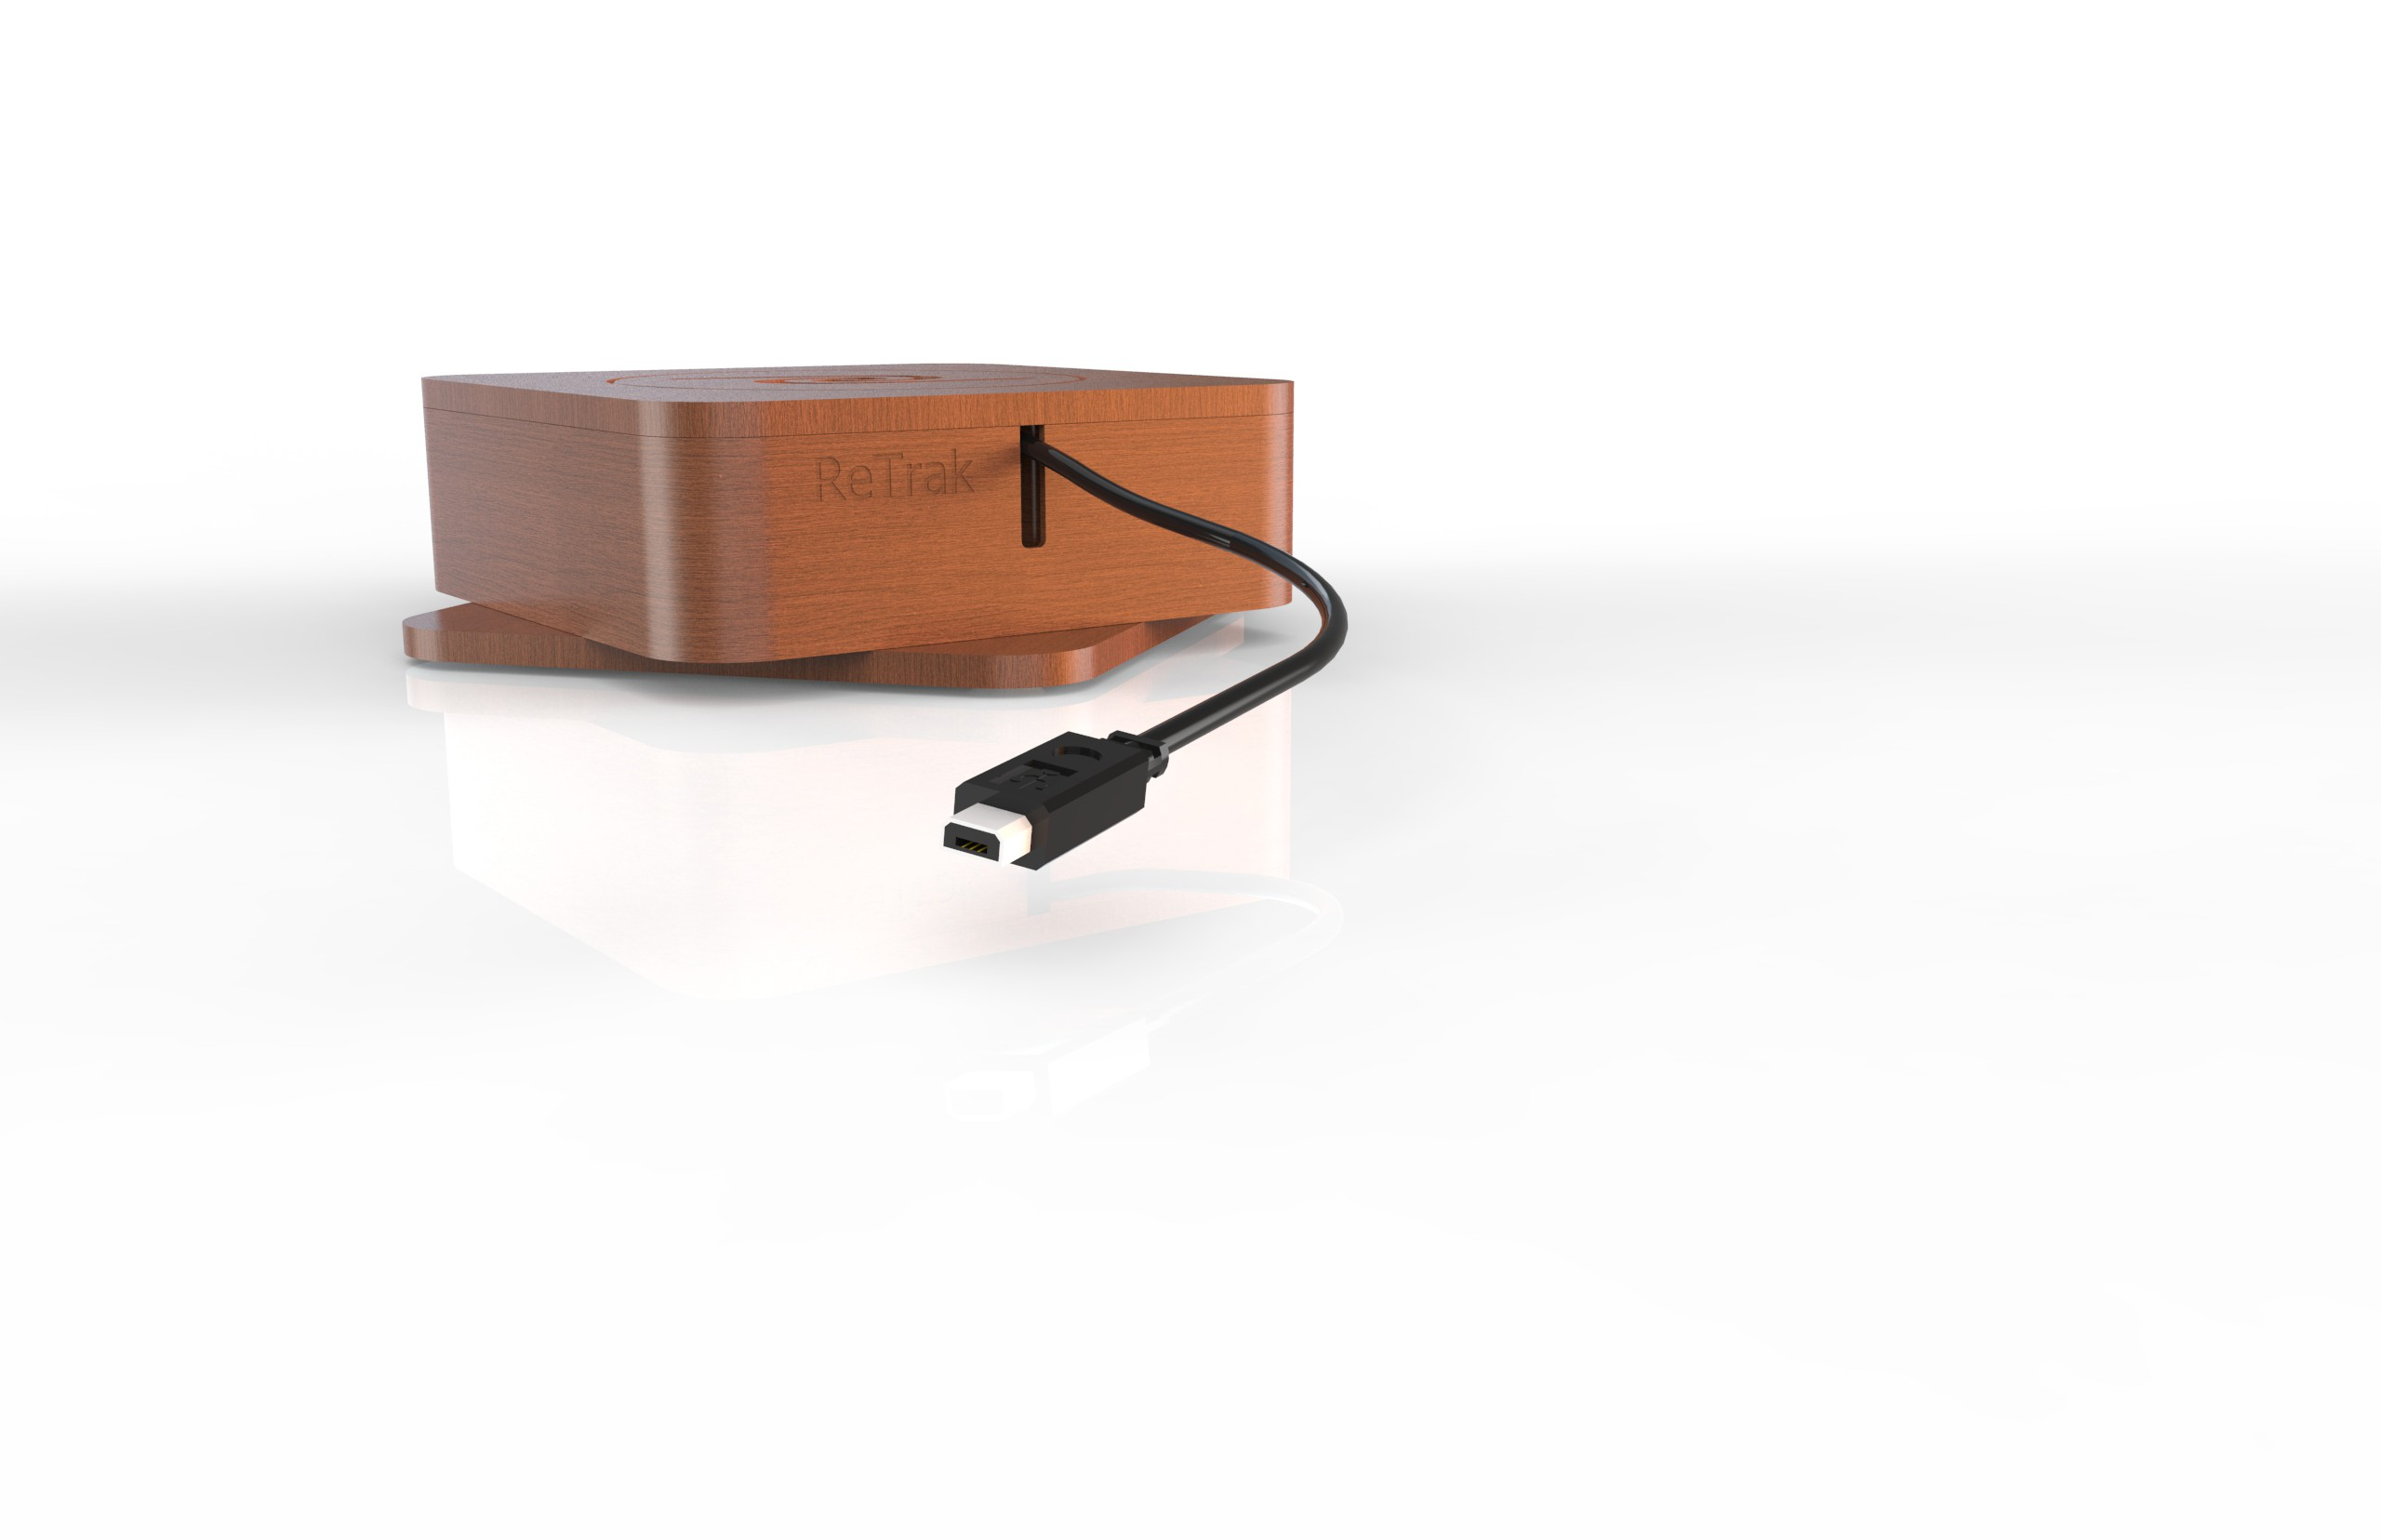 Design a Charge Cable Dock for a Night Stand